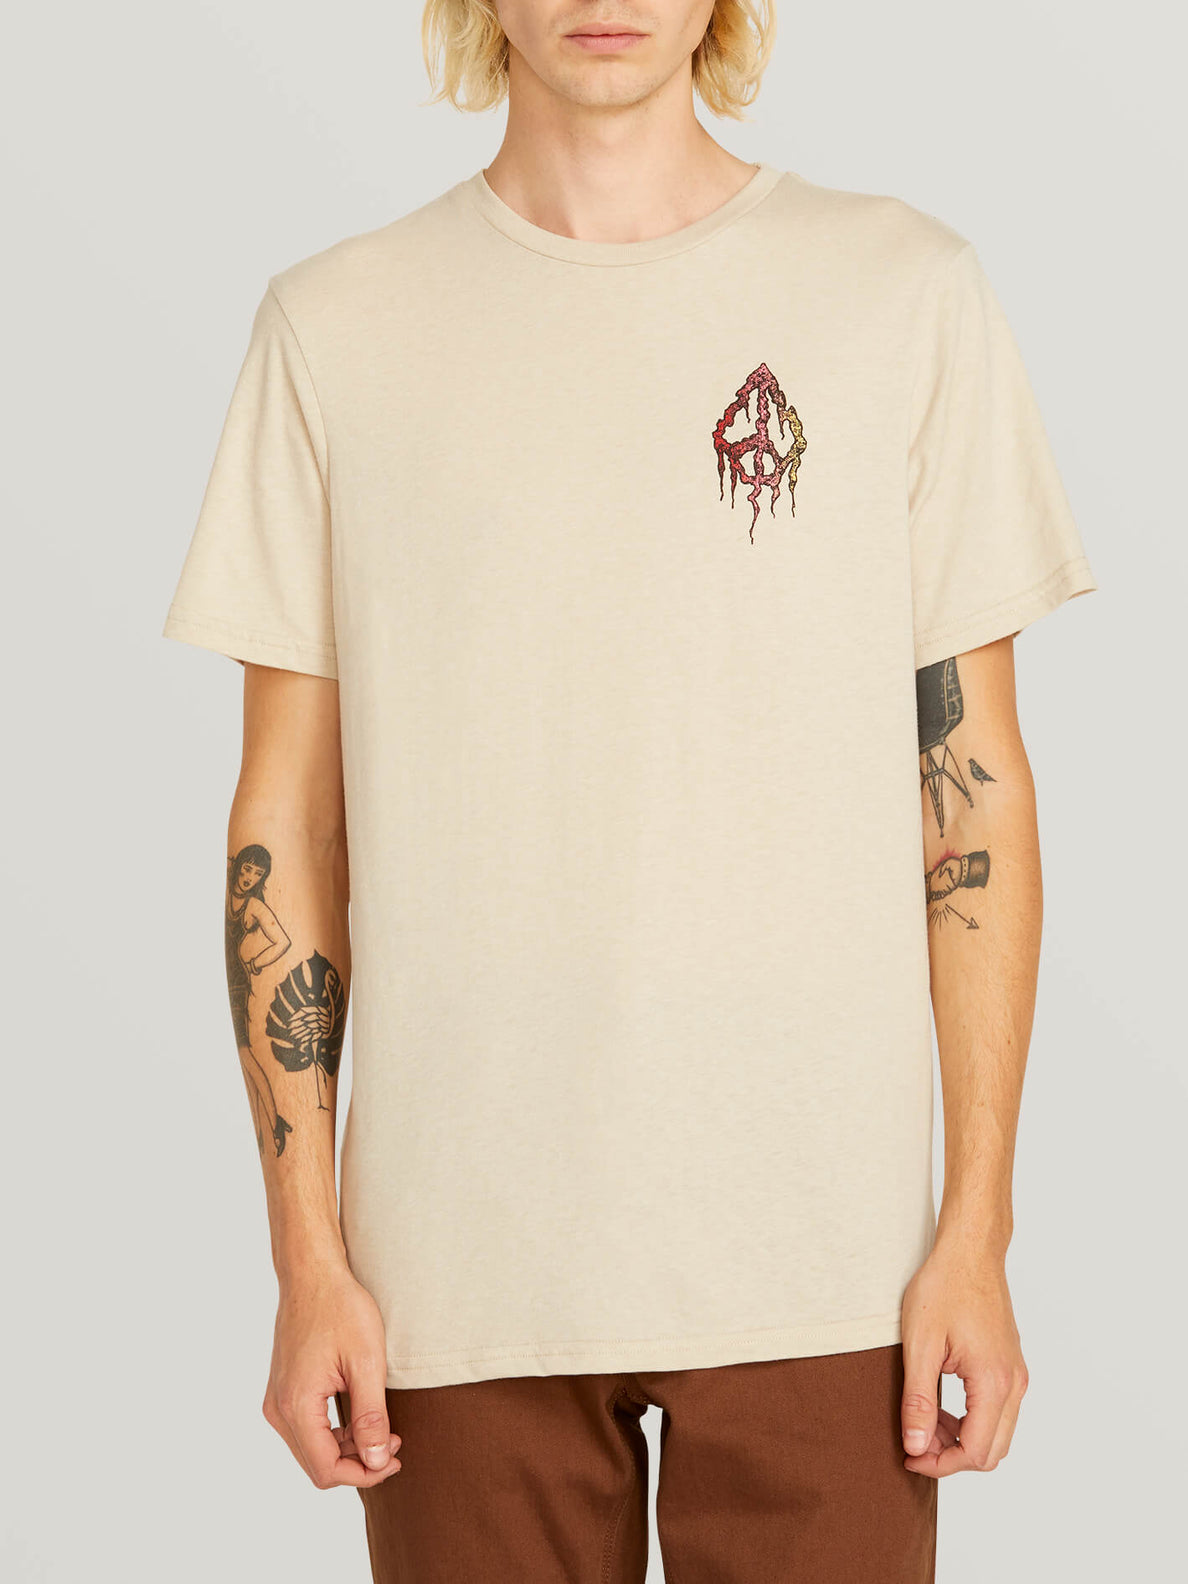 Peace Tree Short Sleeve Tee In Oatmeal, Front View